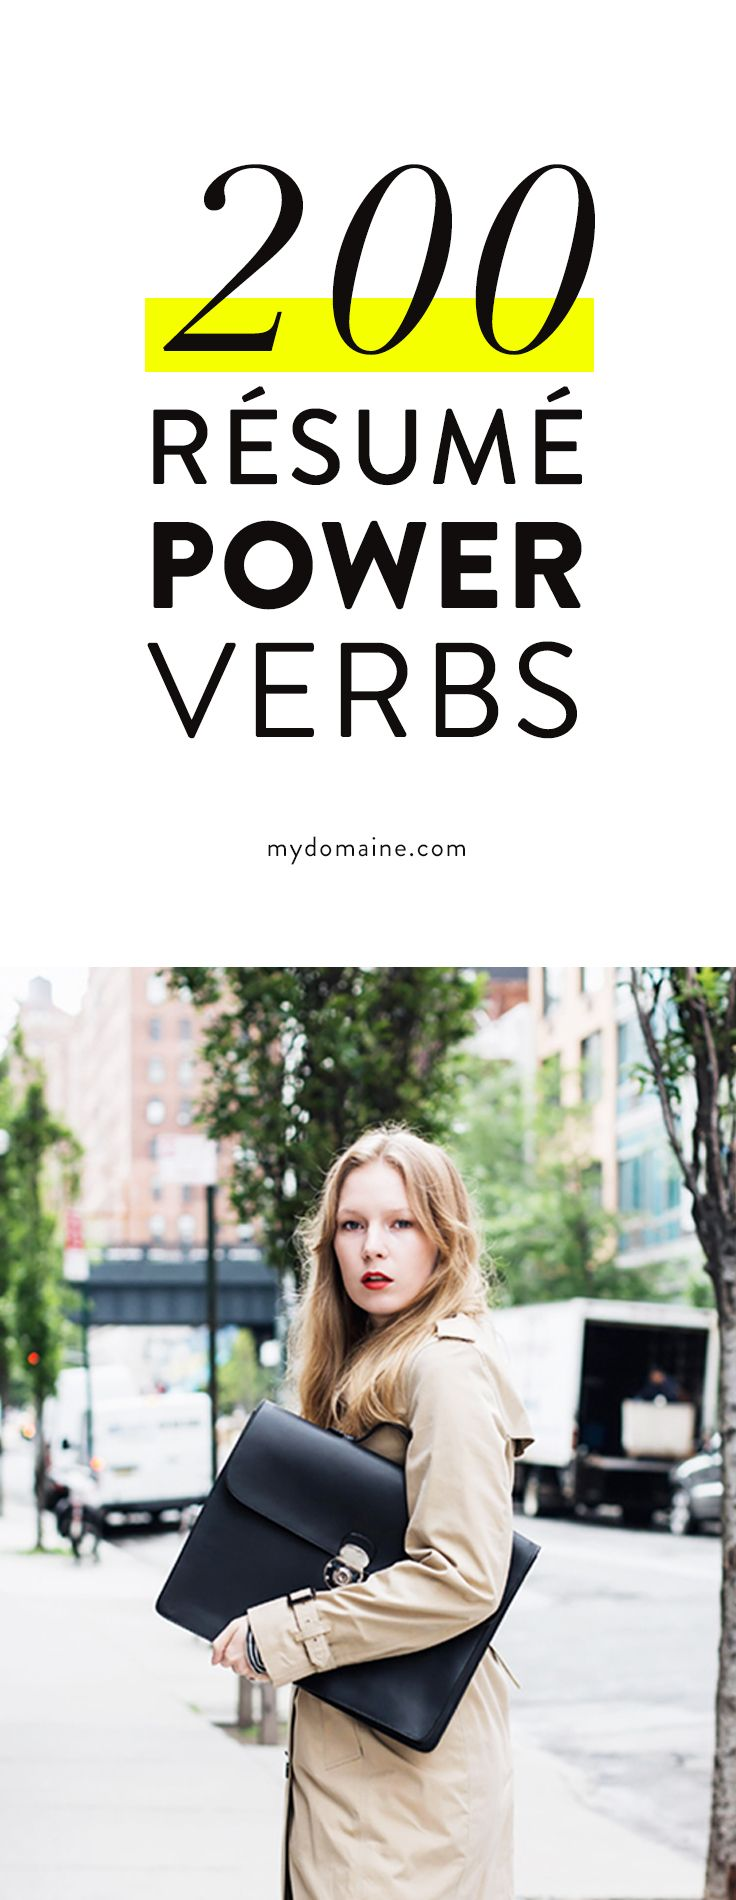 200 power verbs to use on your rsum